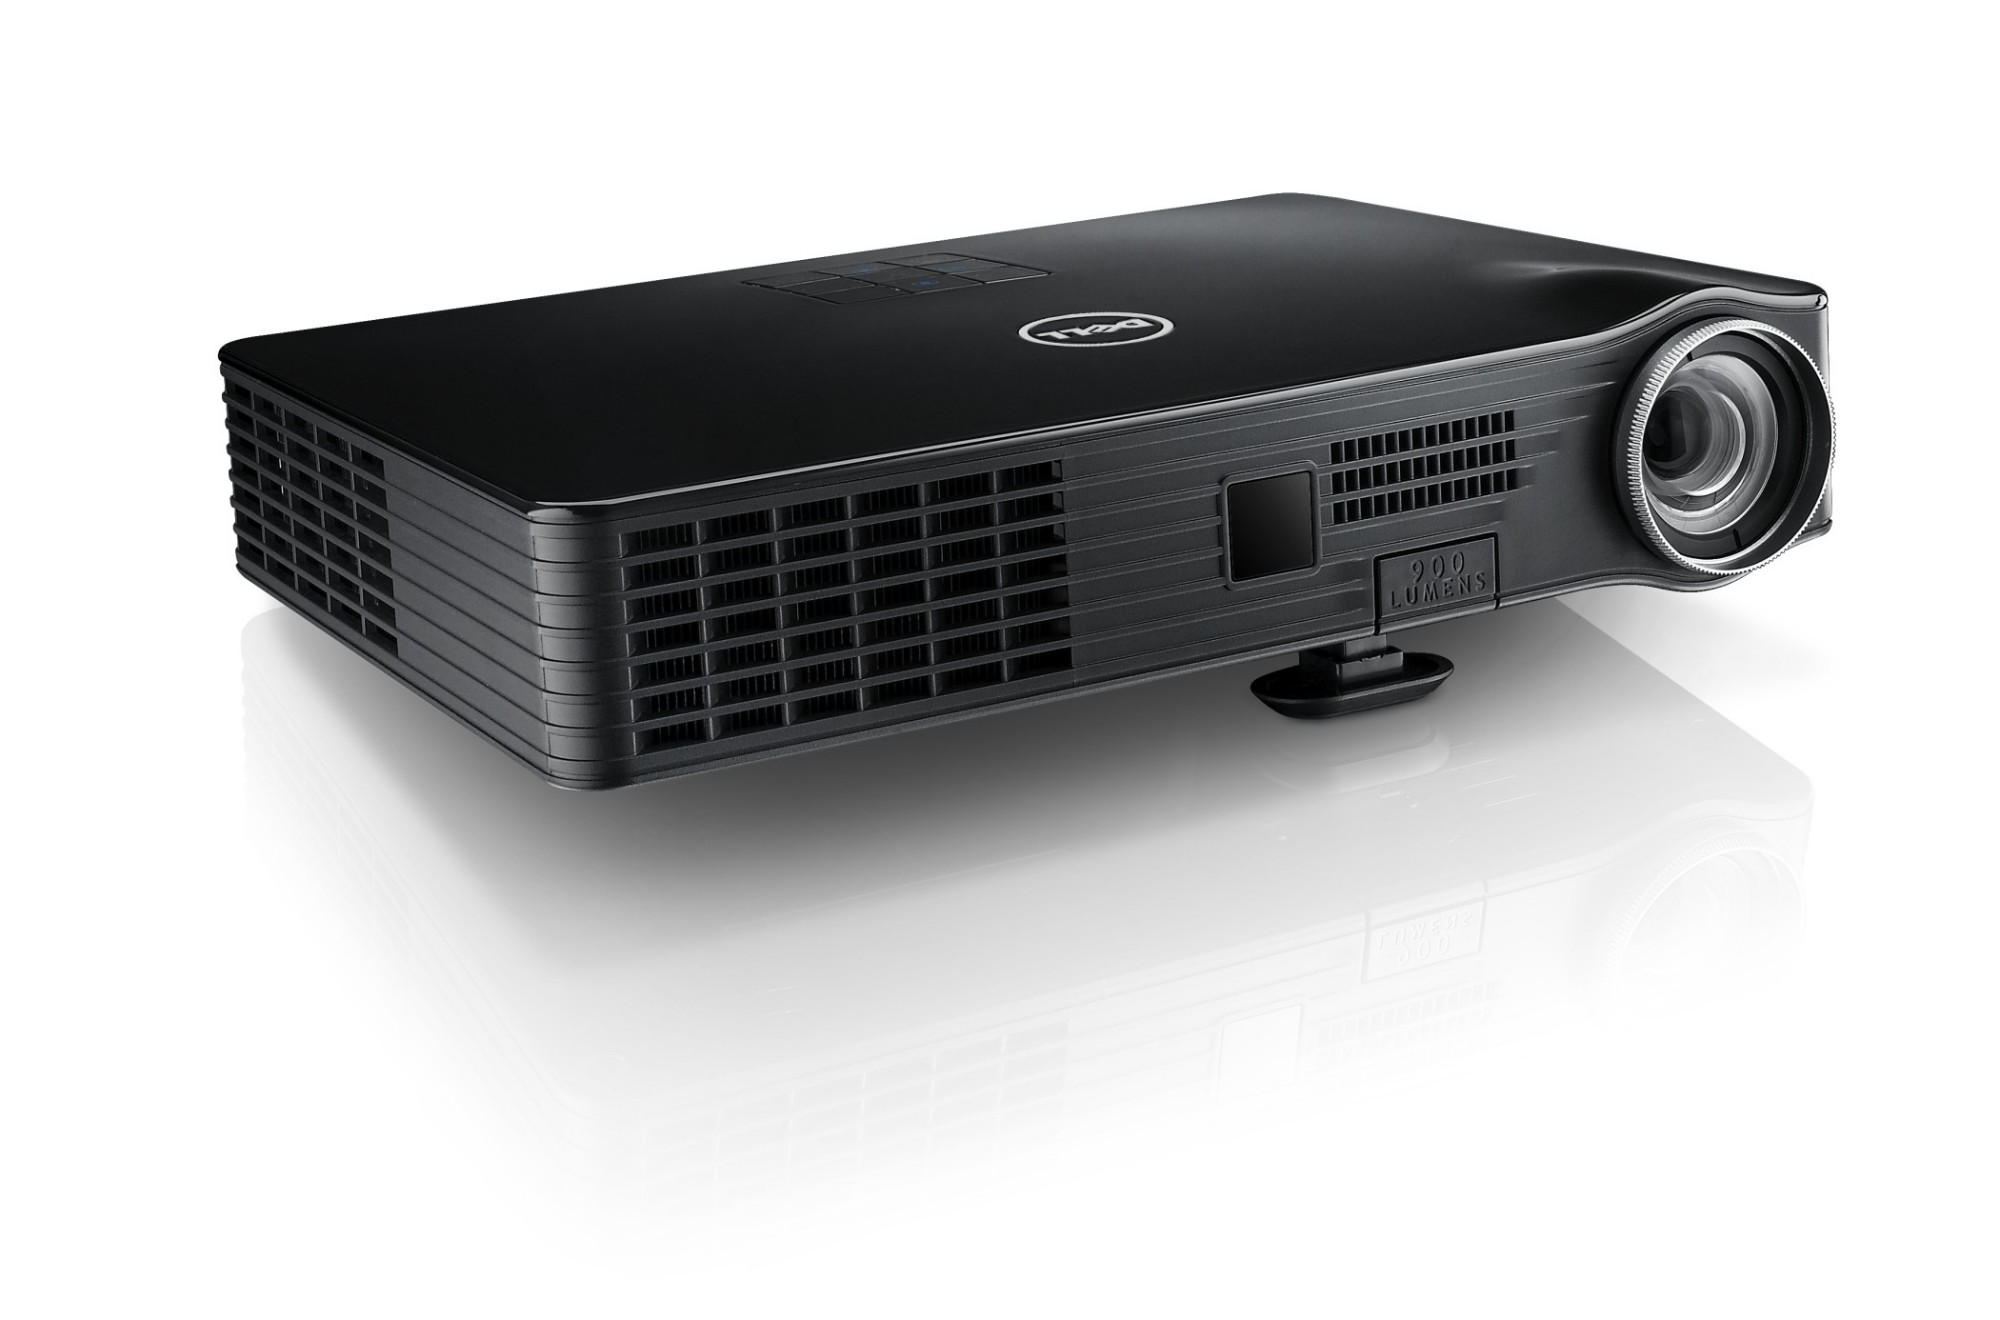 Dell m900hd portable projector 900ansi lumens led wxga for Portable projector